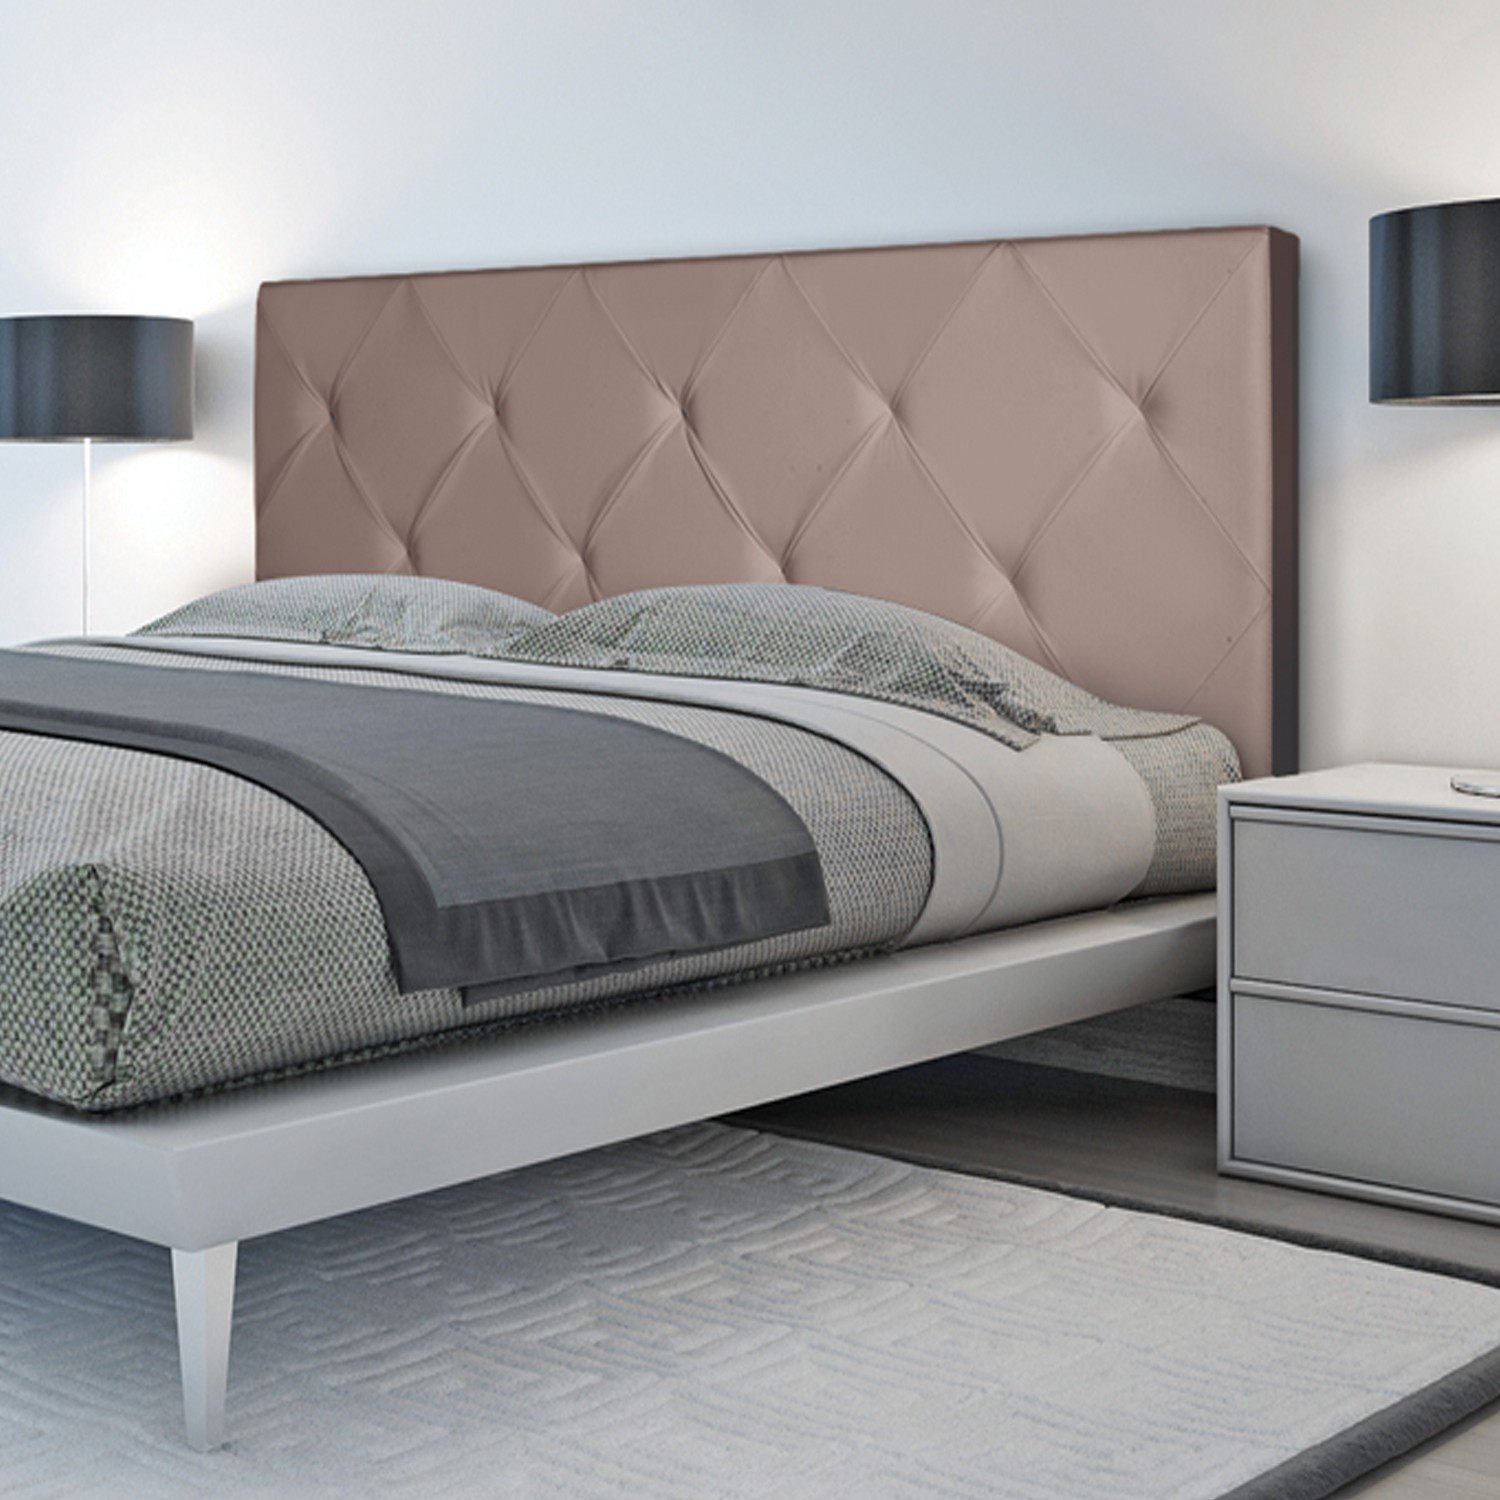 t te de lit capitonn e pvc taupe 160x58 cm accessoires. Black Bedroom Furniture Sets. Home Design Ideas